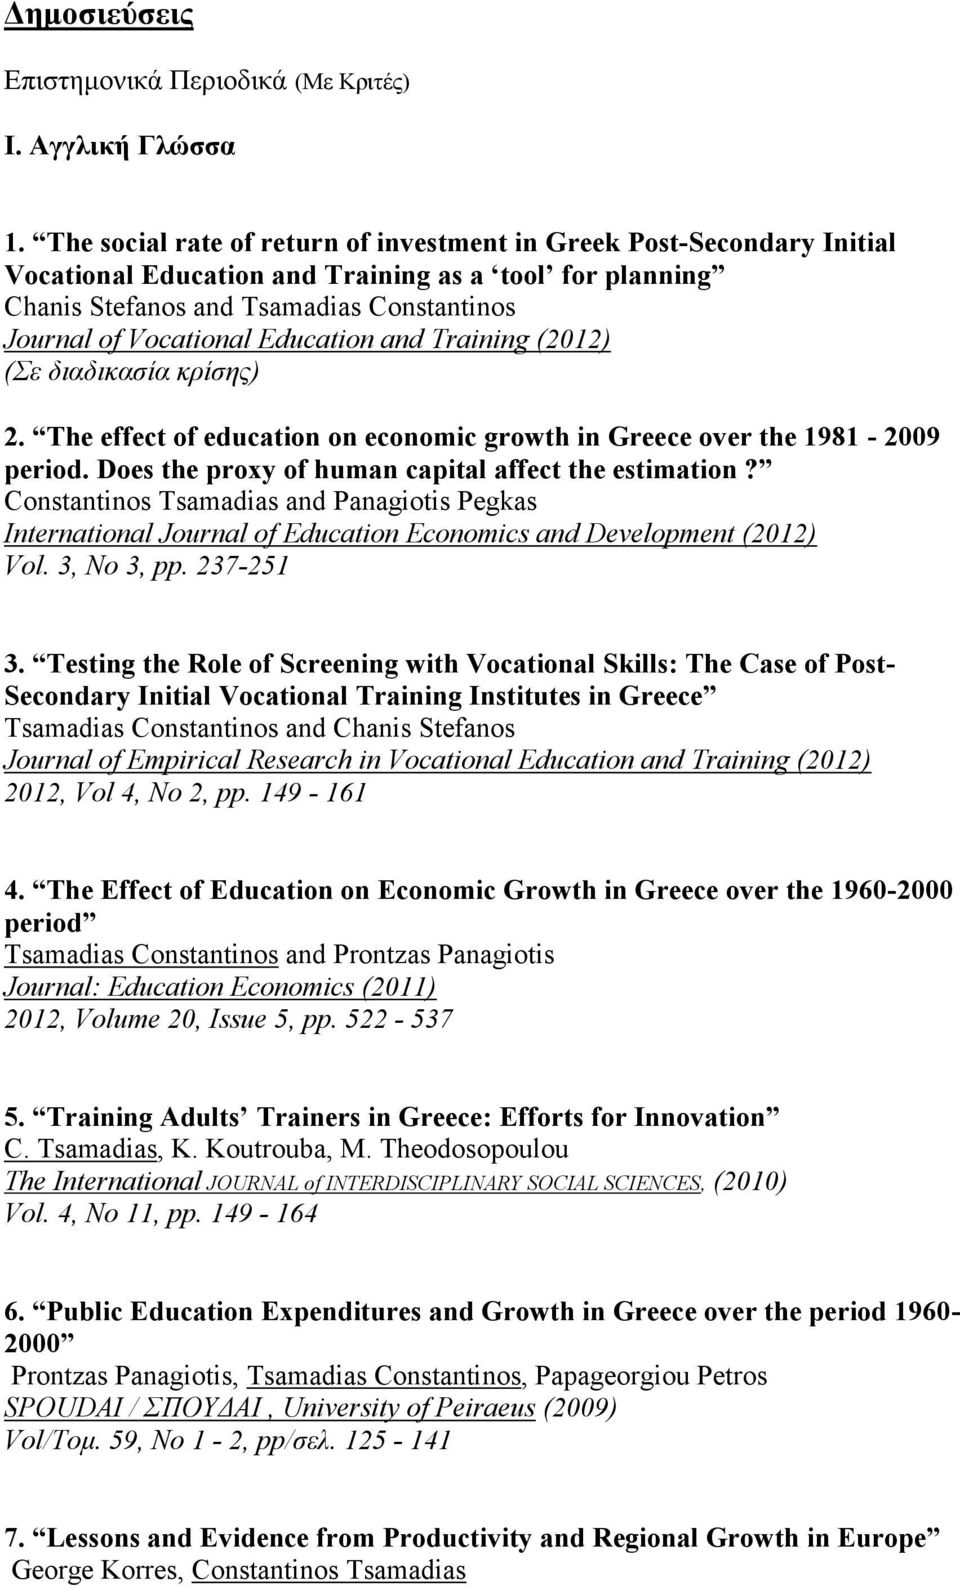 Education and Training (2012) (Σε διαδικασία κρίσης) 2. Τhe effect of education on economic growth in Greece over the 1981-2009 period. Does the proxy of human capital affect the estimation?